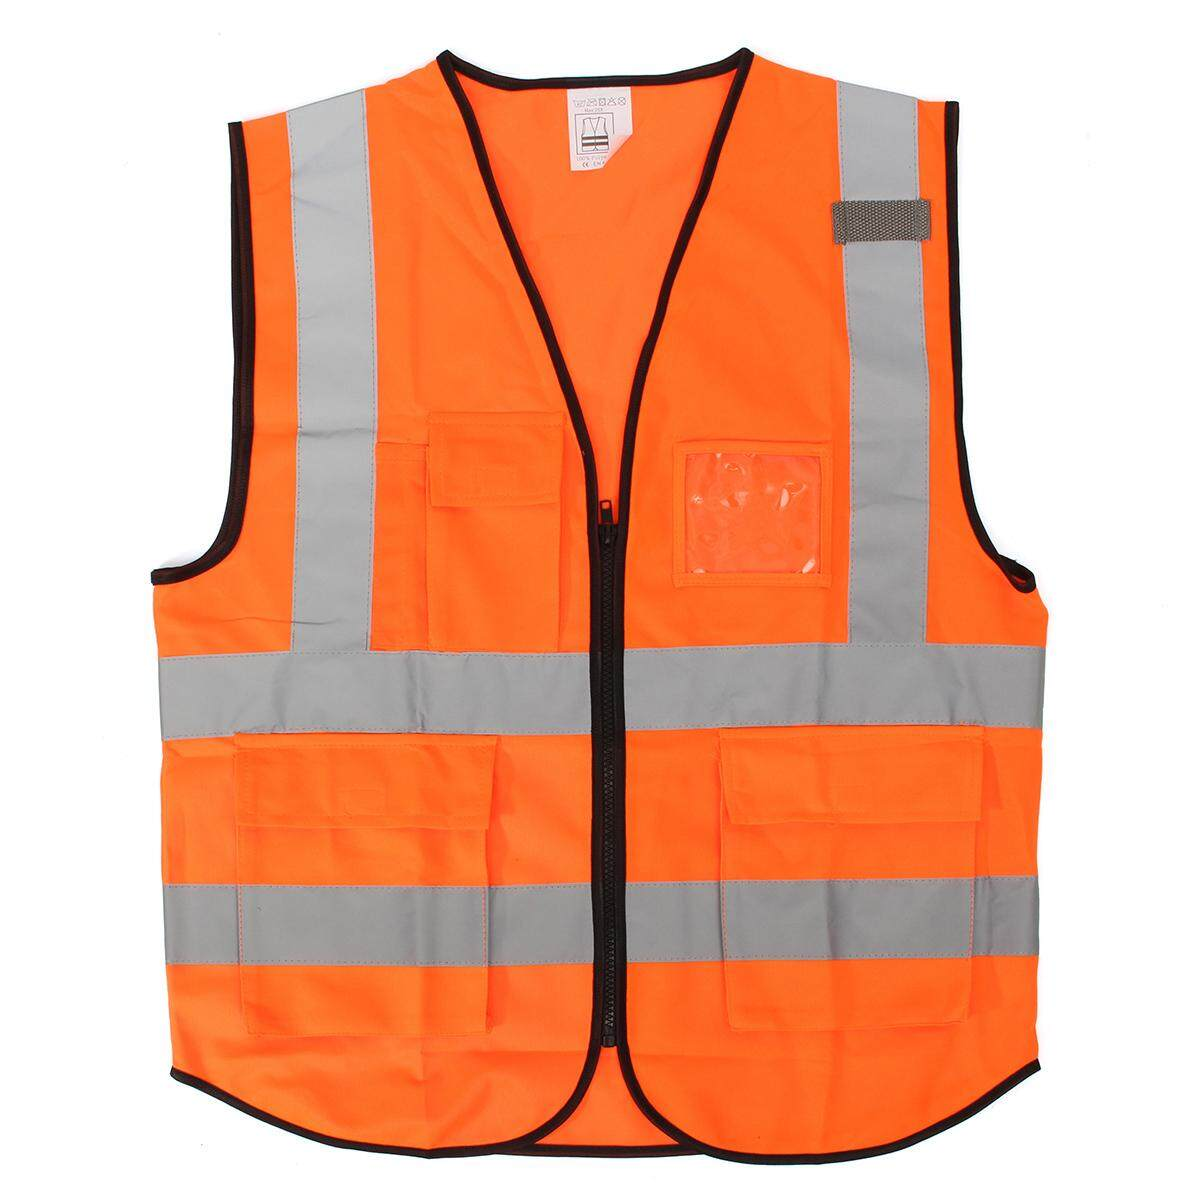 Orange Xl Hi Vis Vest Workwear Clothing Safety Reflective Vest Safety Vest Reflective Logo Printing By Freebang.